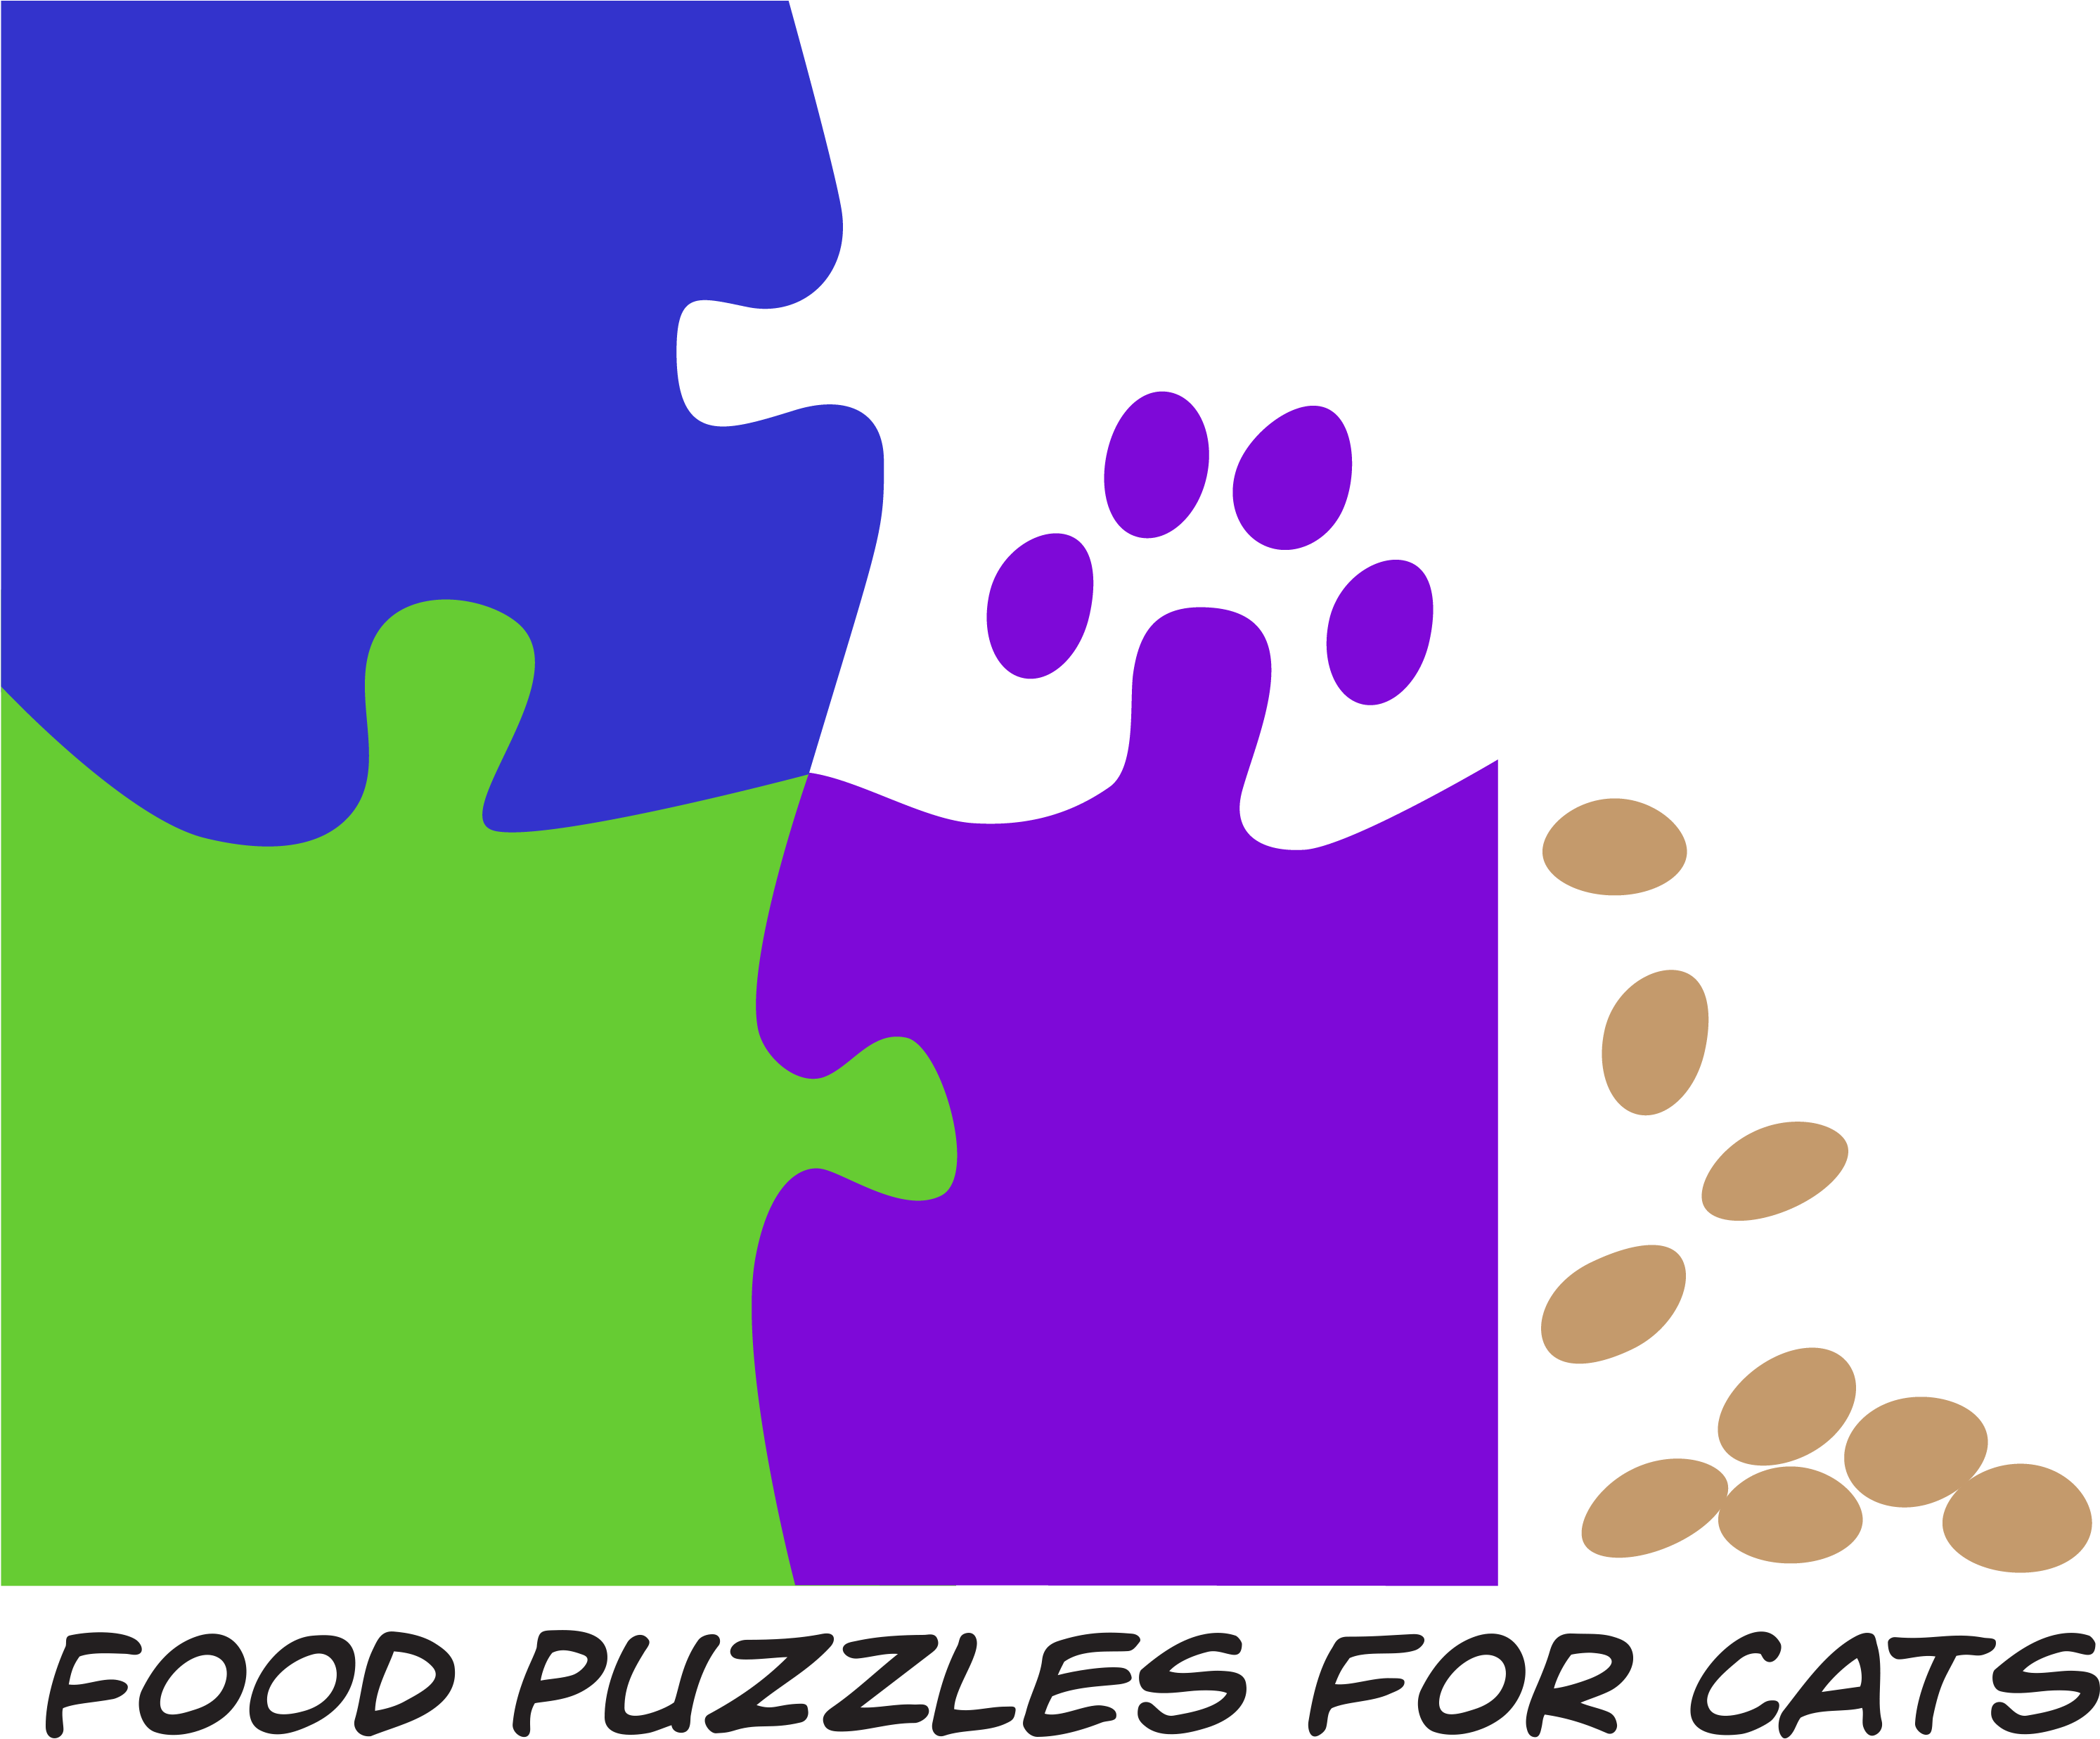 Increase clipart size clip art royalty free library Do Food Puzzles Increase Feline Frolicking - Cat Clipart ... clip art royalty free library